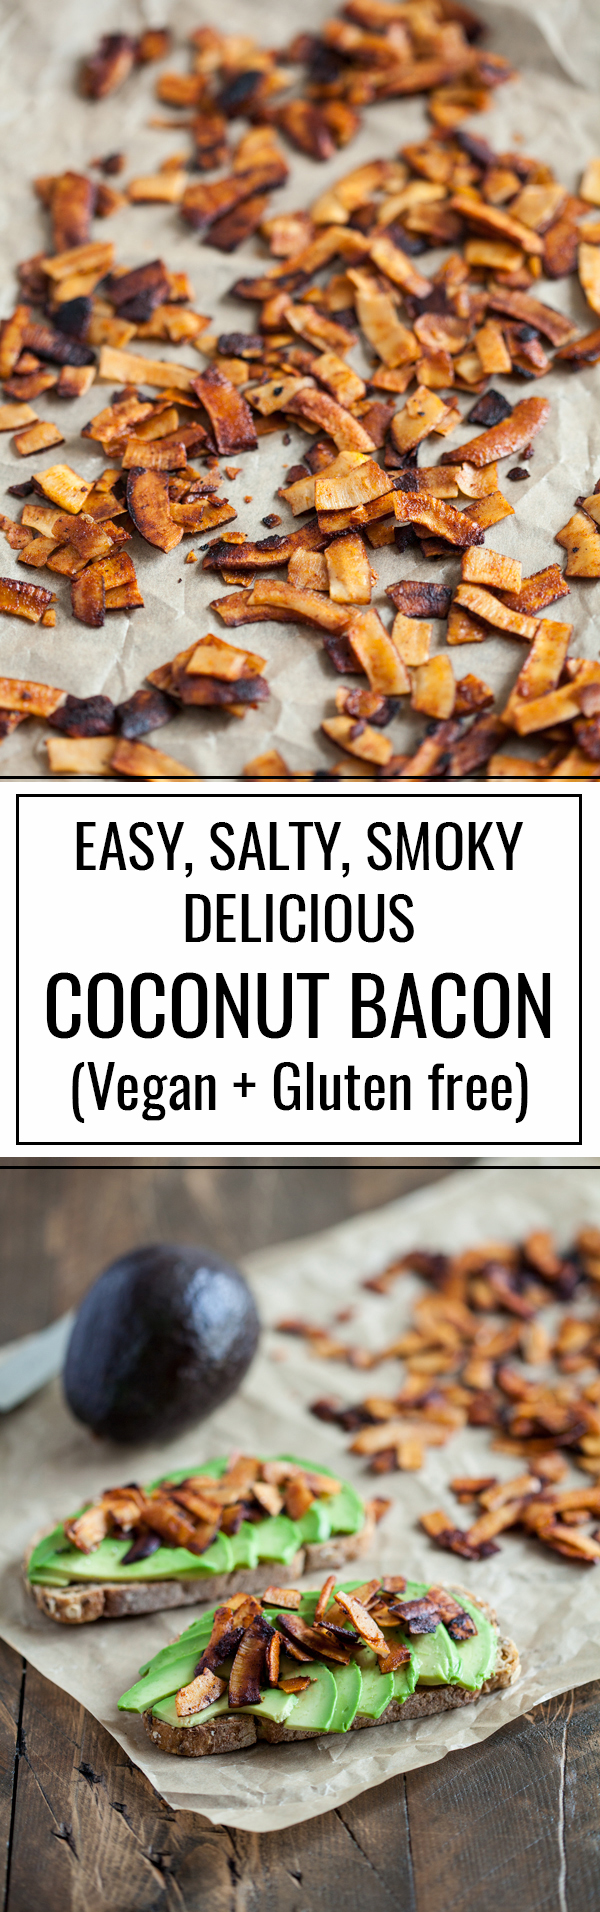 Easy, delicious vegan and gluten free coconut